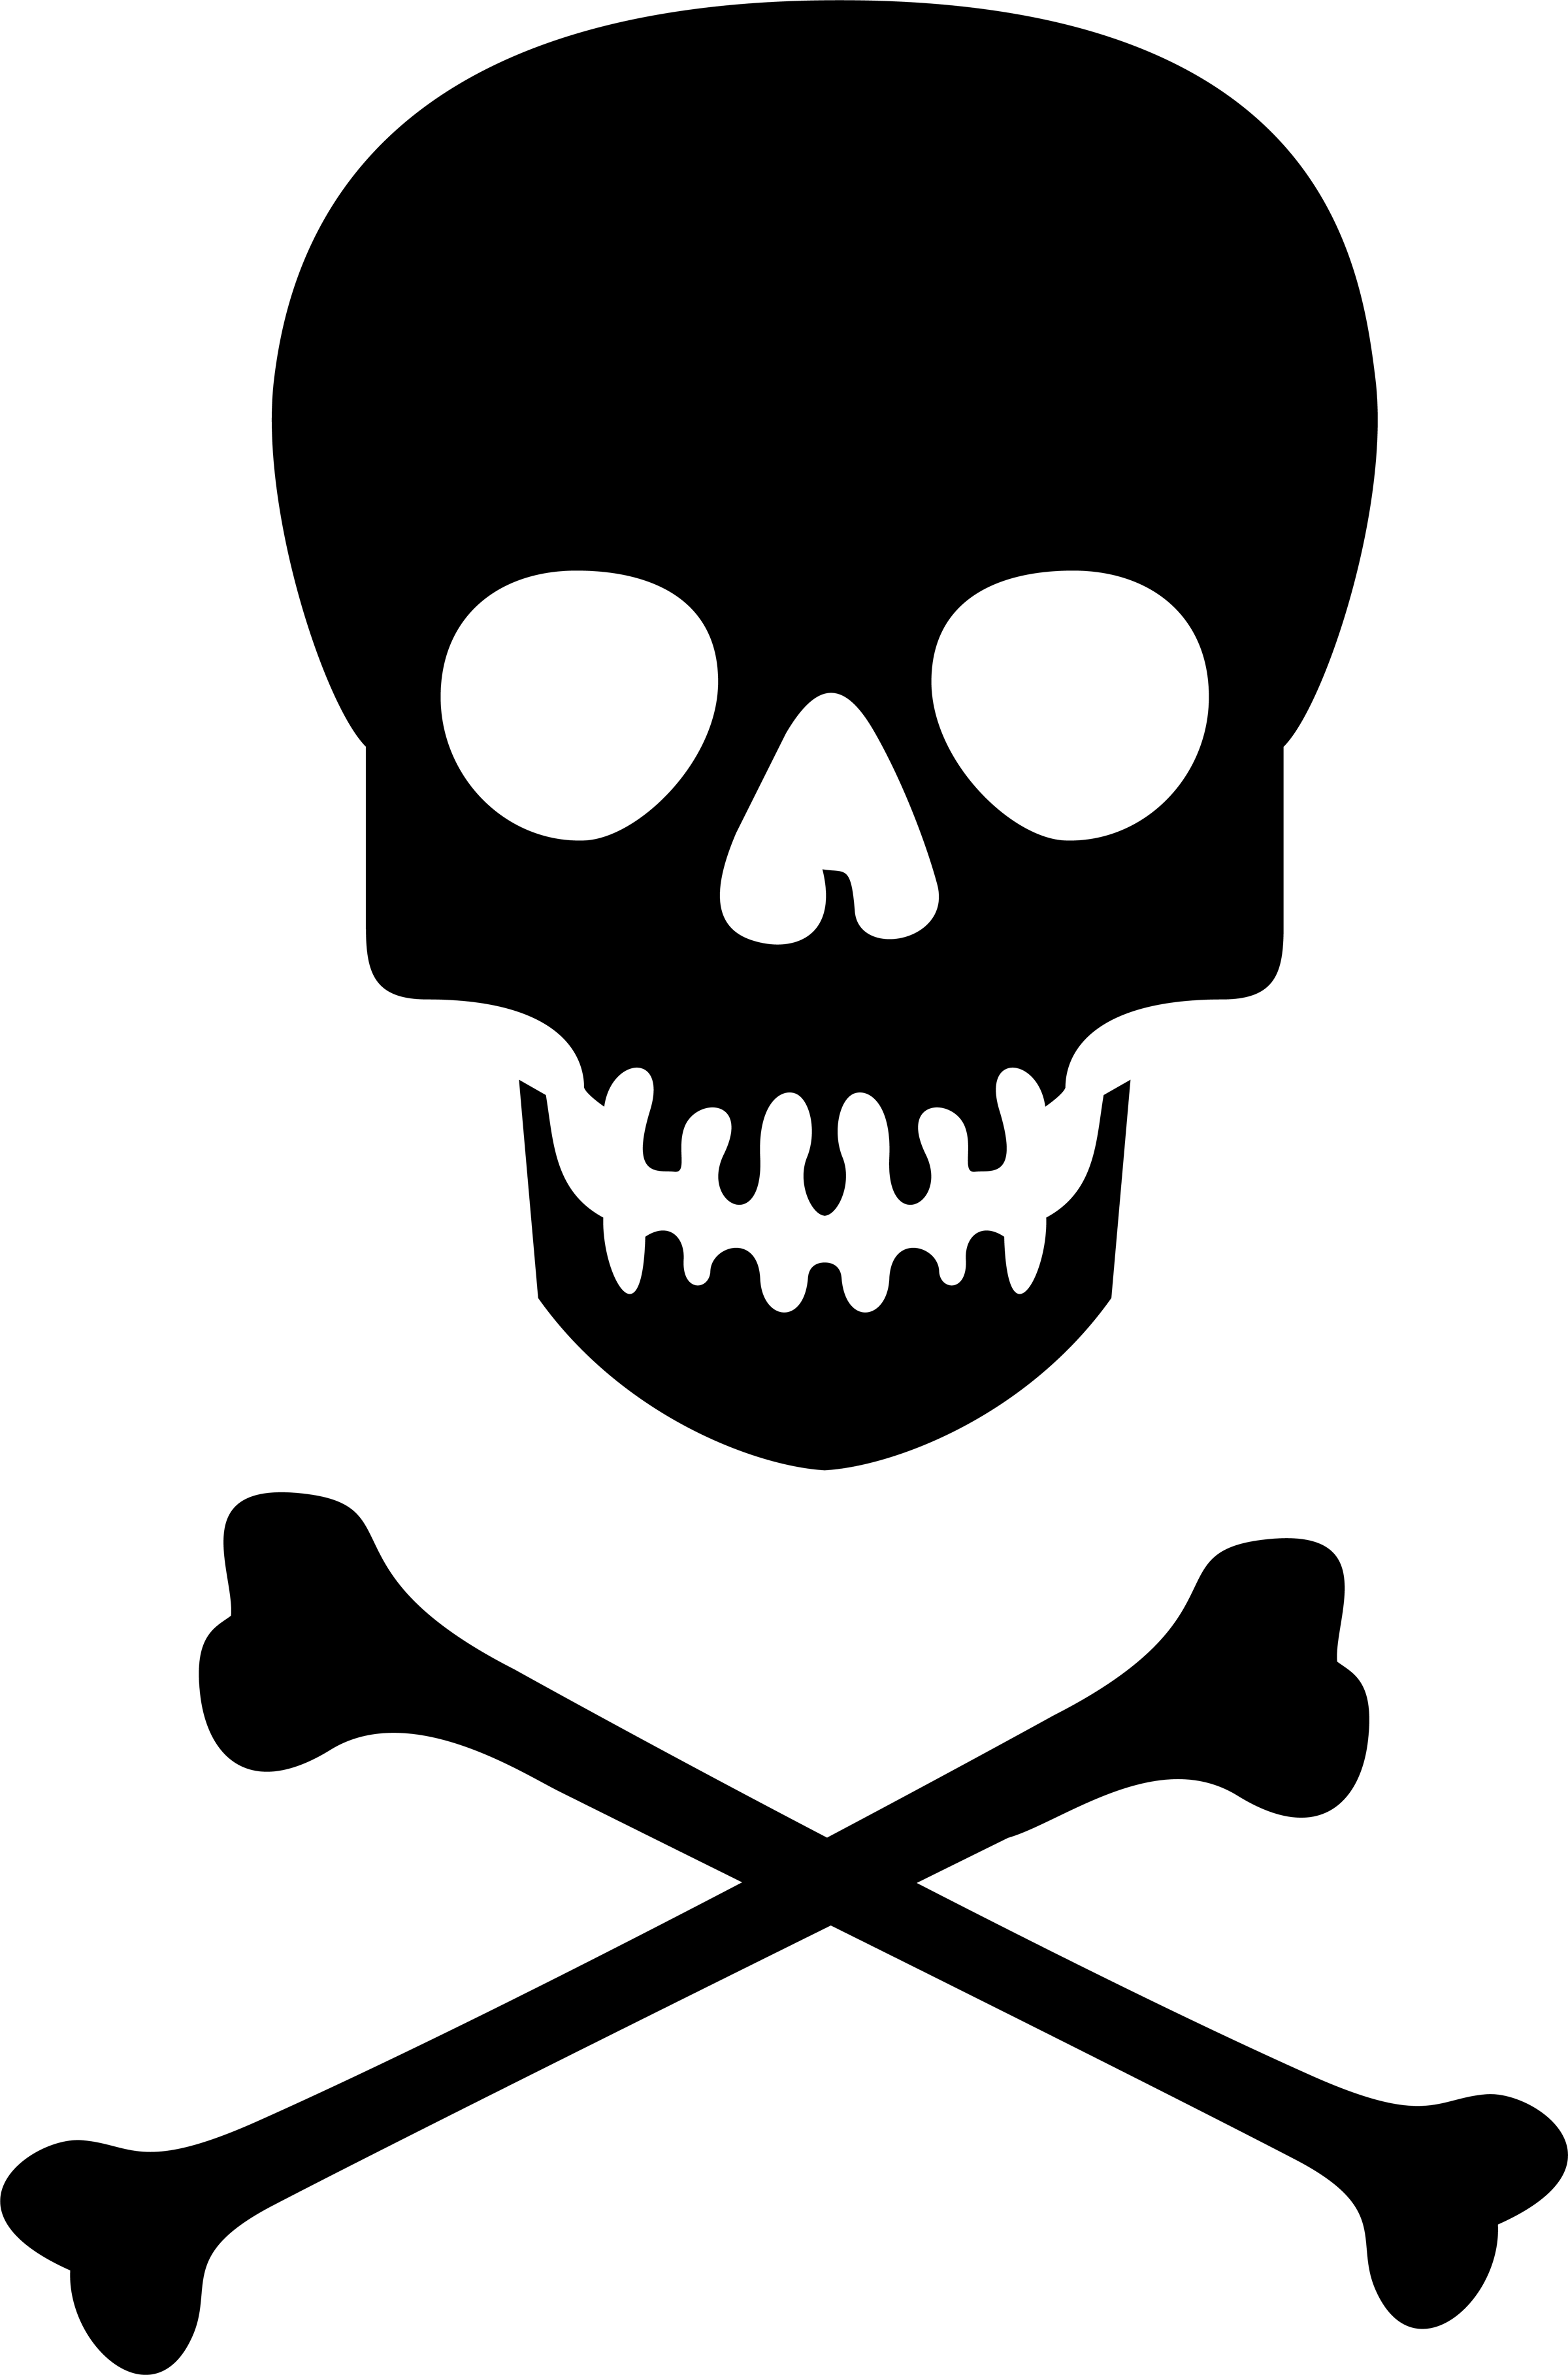 Skull And Crossbones PNG Clipart image #27247